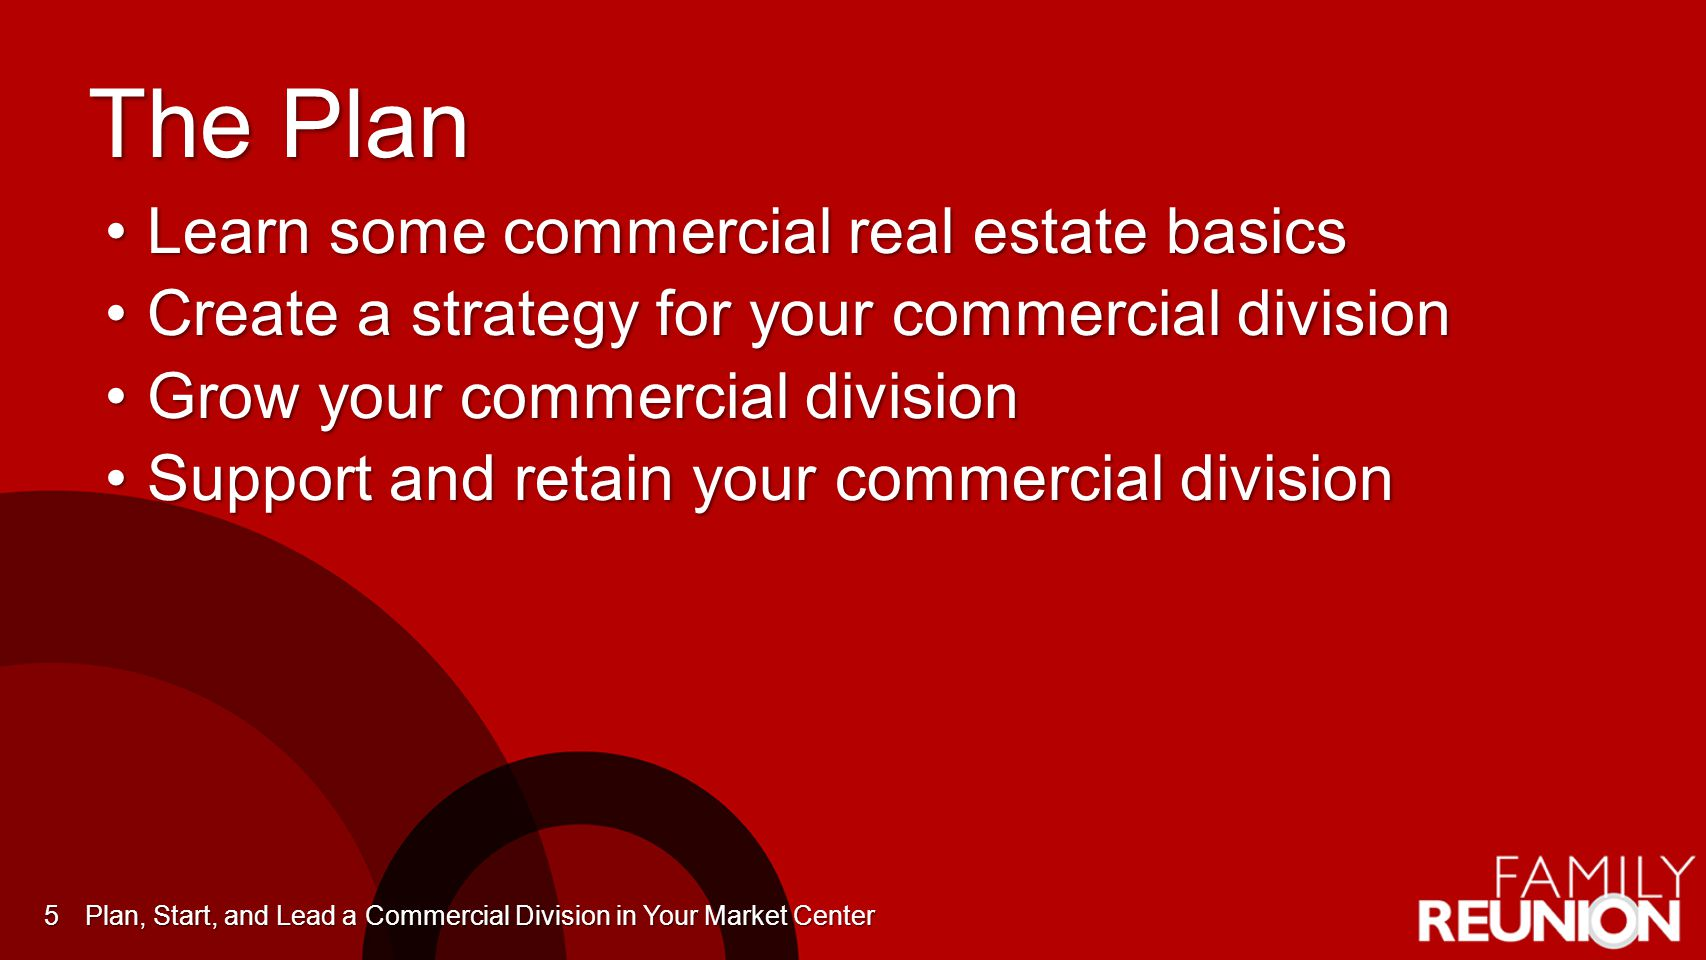 #KWFR Commercial Basics Plan, Start, and Lead a Commercial Division in Your Market Center6